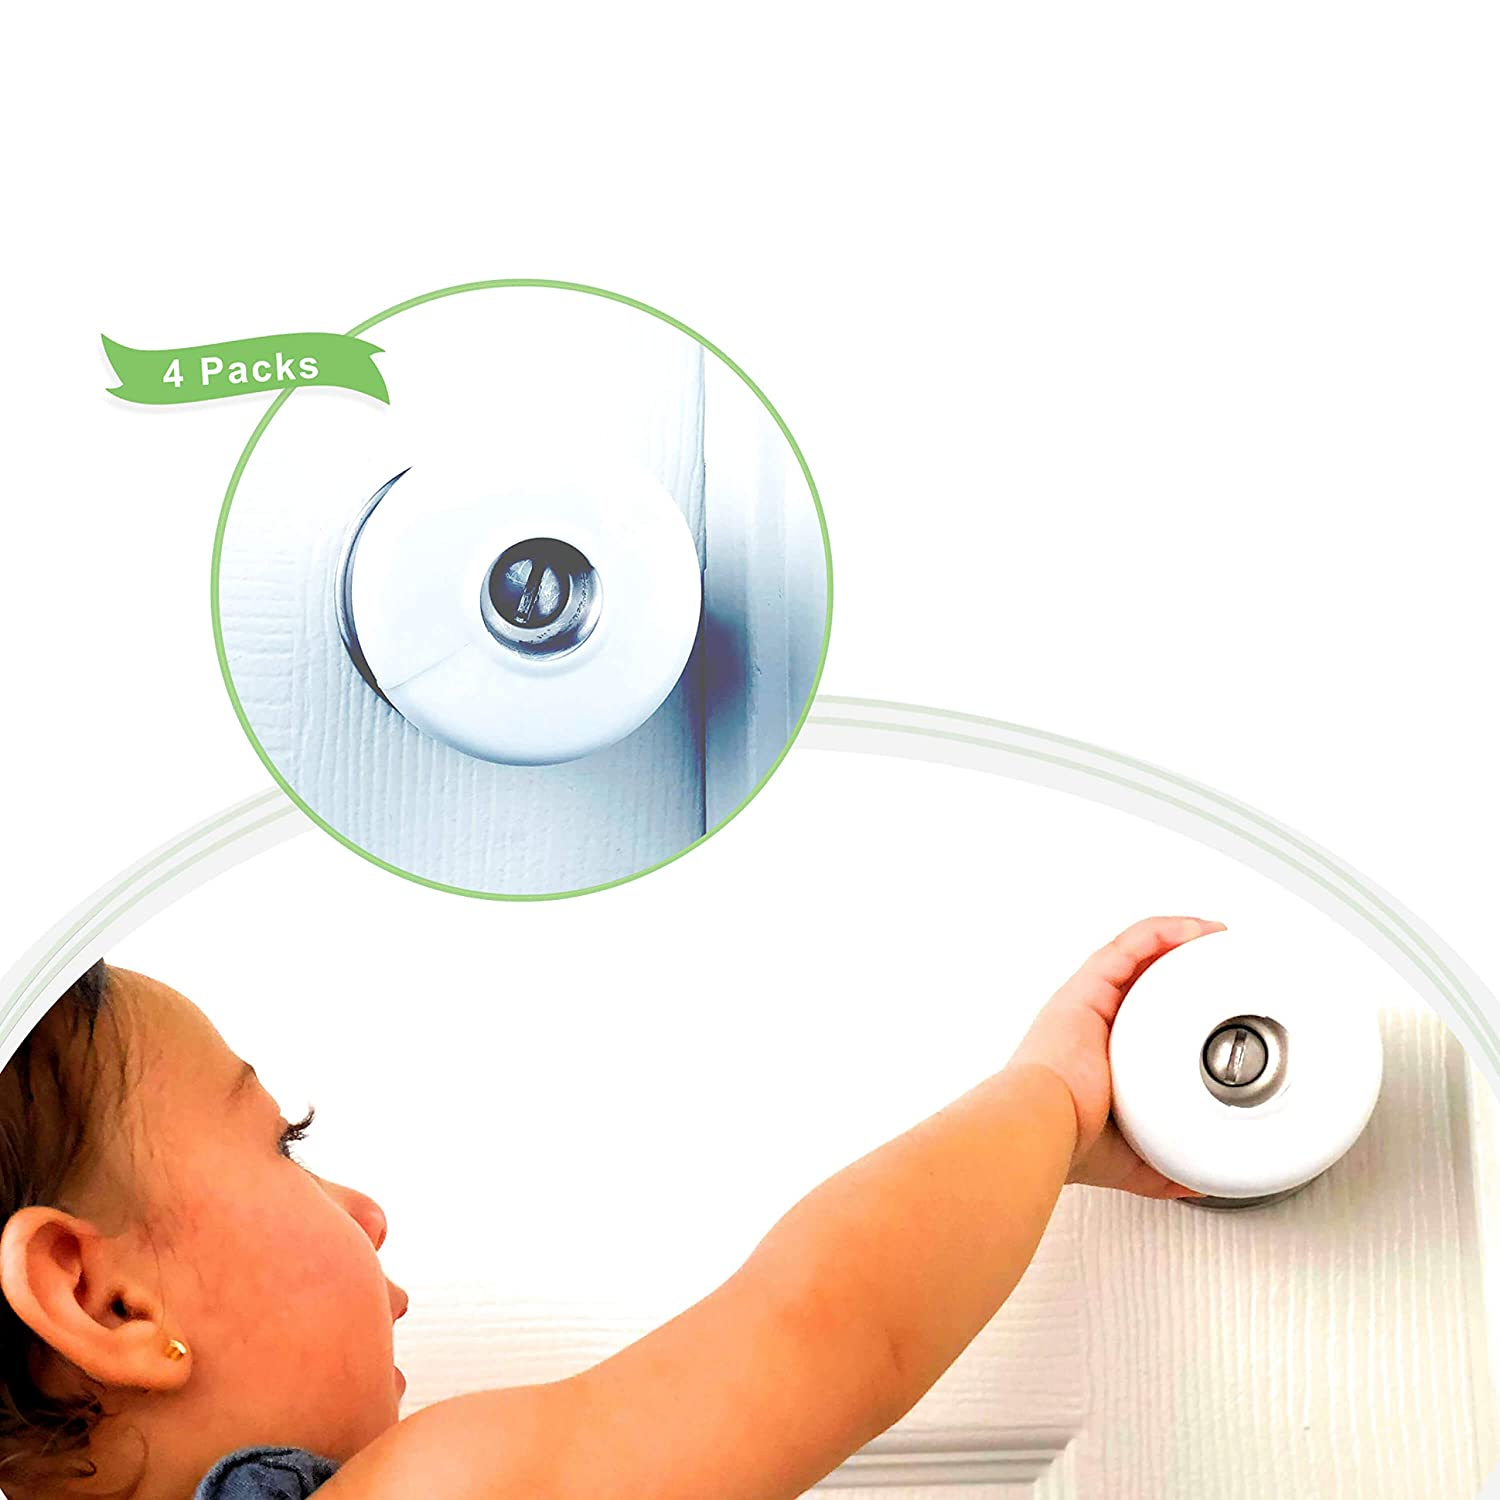 Baby Safety Door Knob Cover Babyproof - 4 Pack Door Handle Security Lock for Lever - Premium Plastic Quality for Childproof Kids Toddler - Protect Your Child from Opening Unsafe Rooms in Home Jouryeh